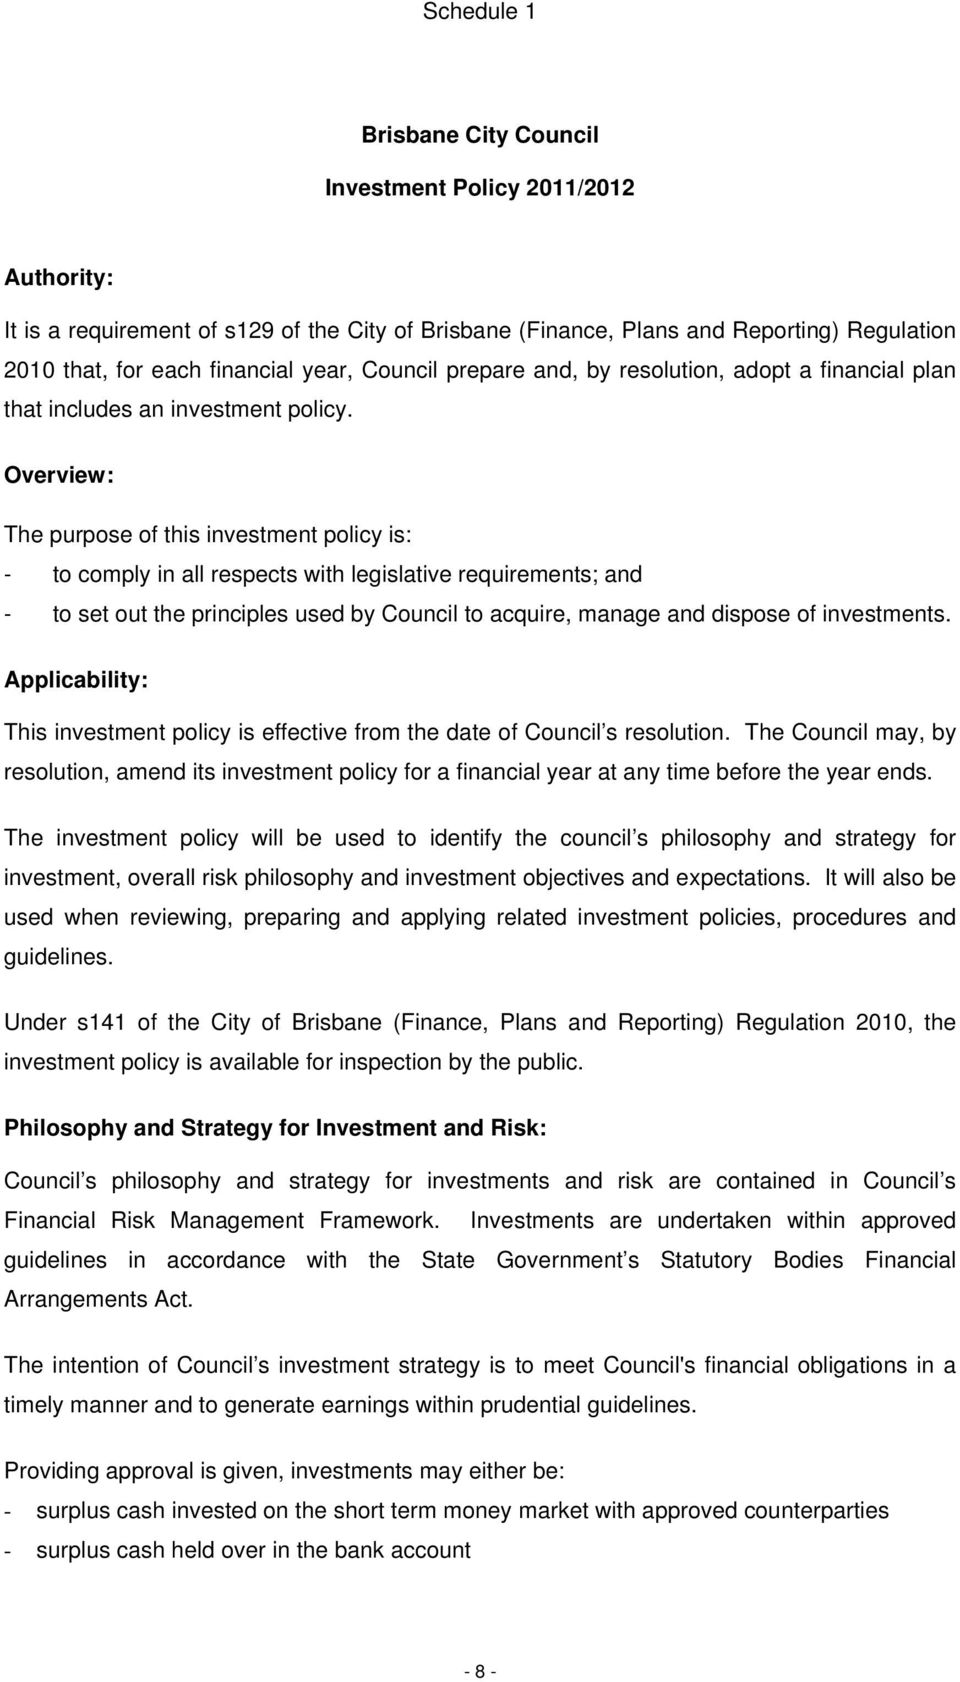 Overview: The purpose of this investment policy is: - to comply in all respects with legislative requirements; and - to set out the principles used by Council to acquire, manage and dispose of